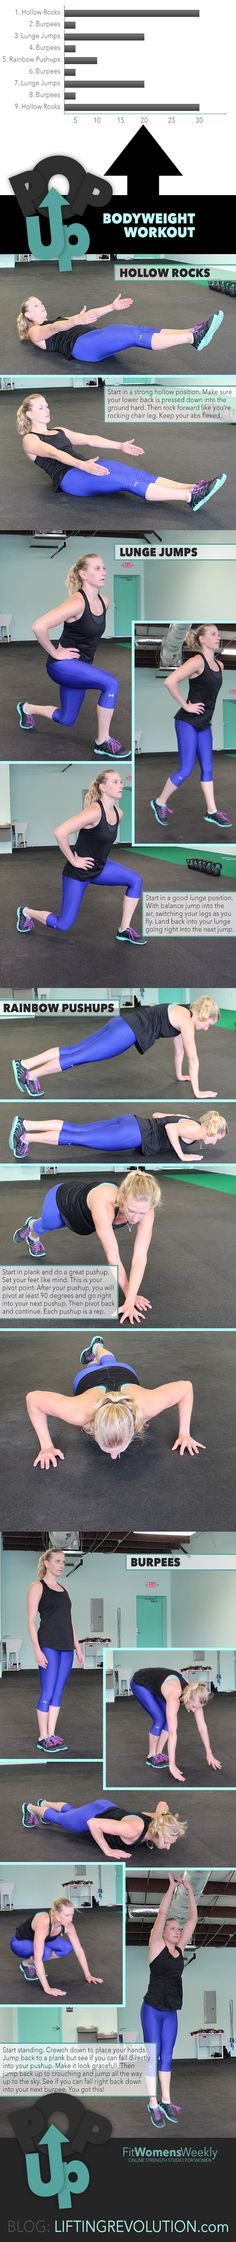 10 Minute Body Weight Workout: Pop Up